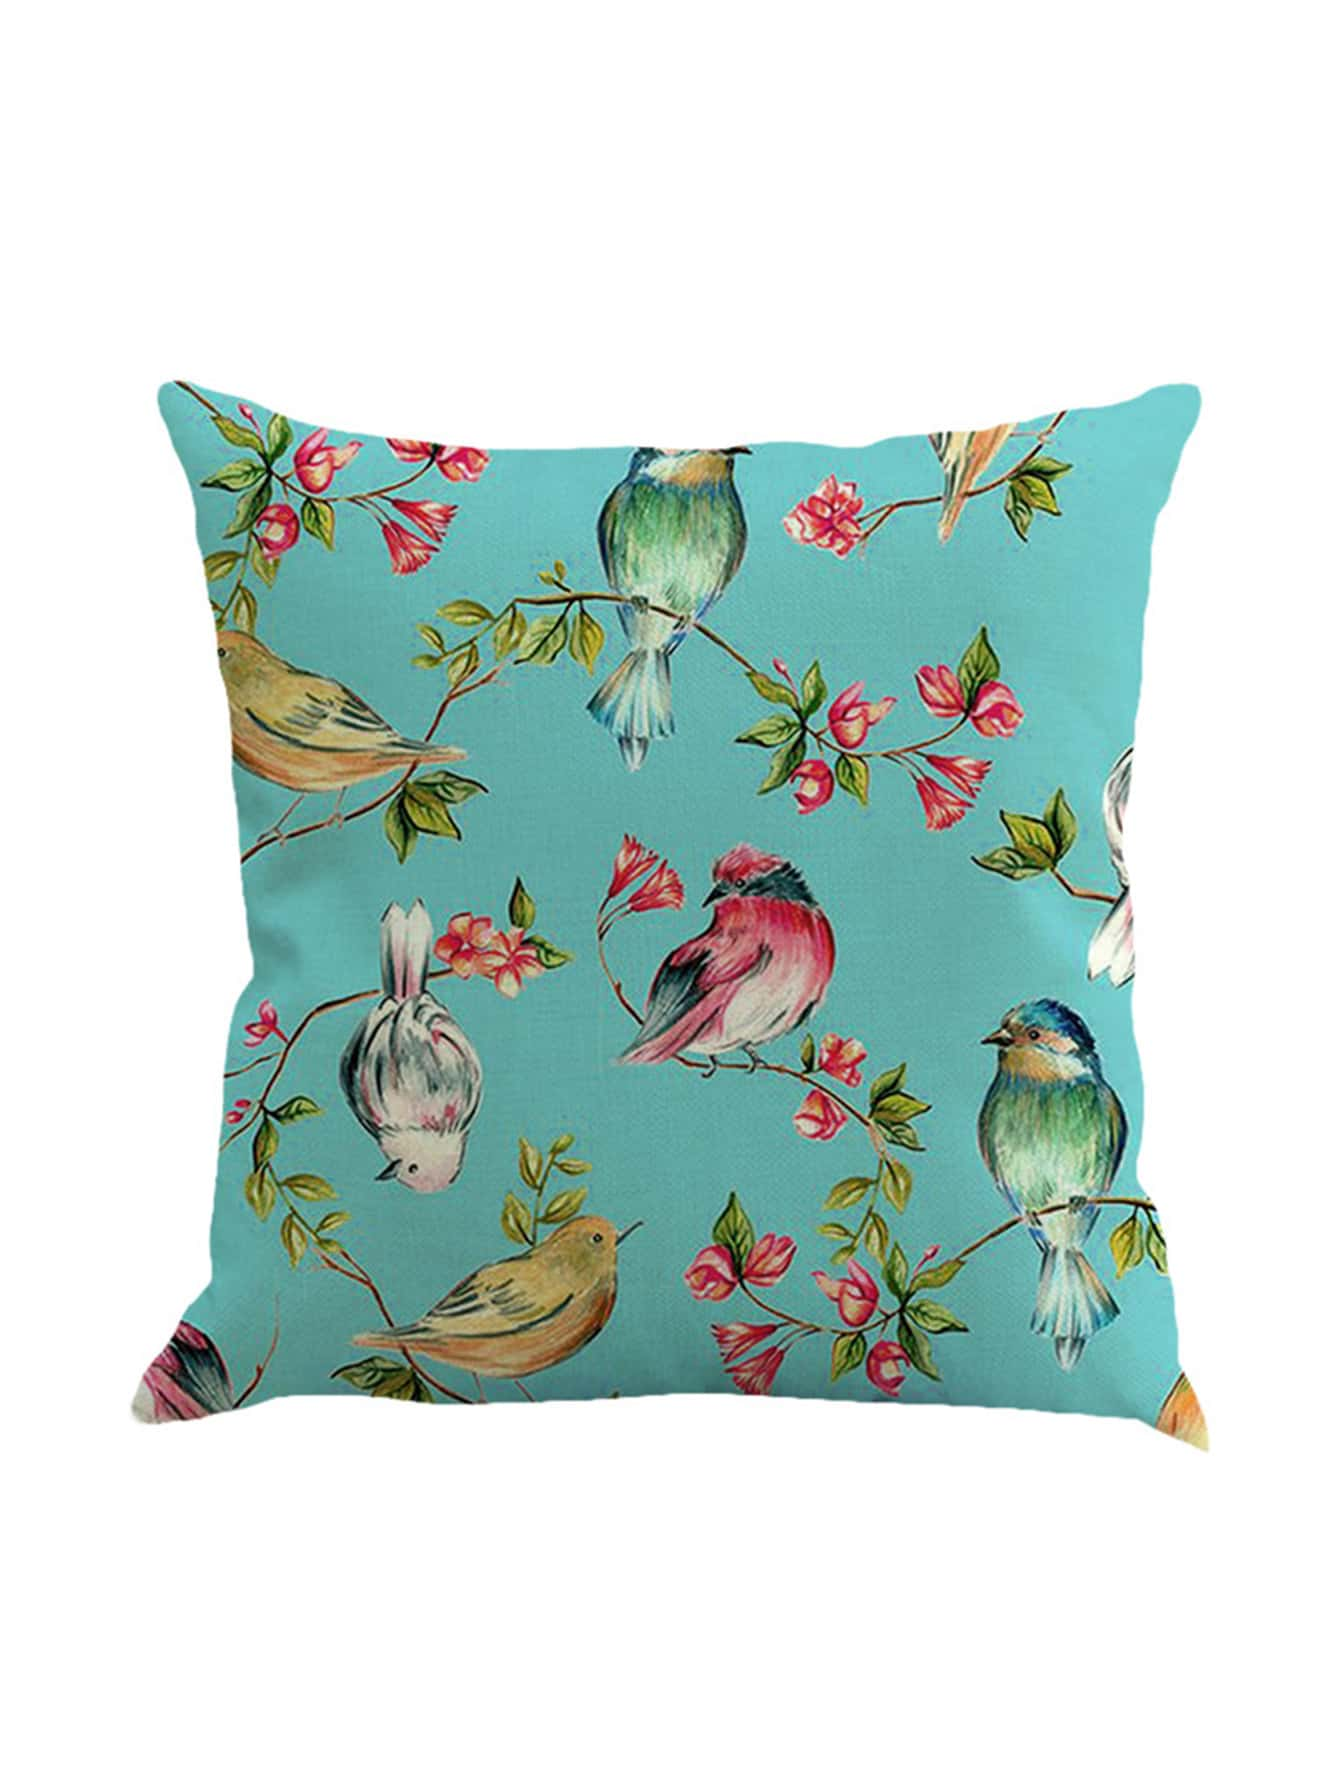 Image of Bird Print Pillowcase Cover